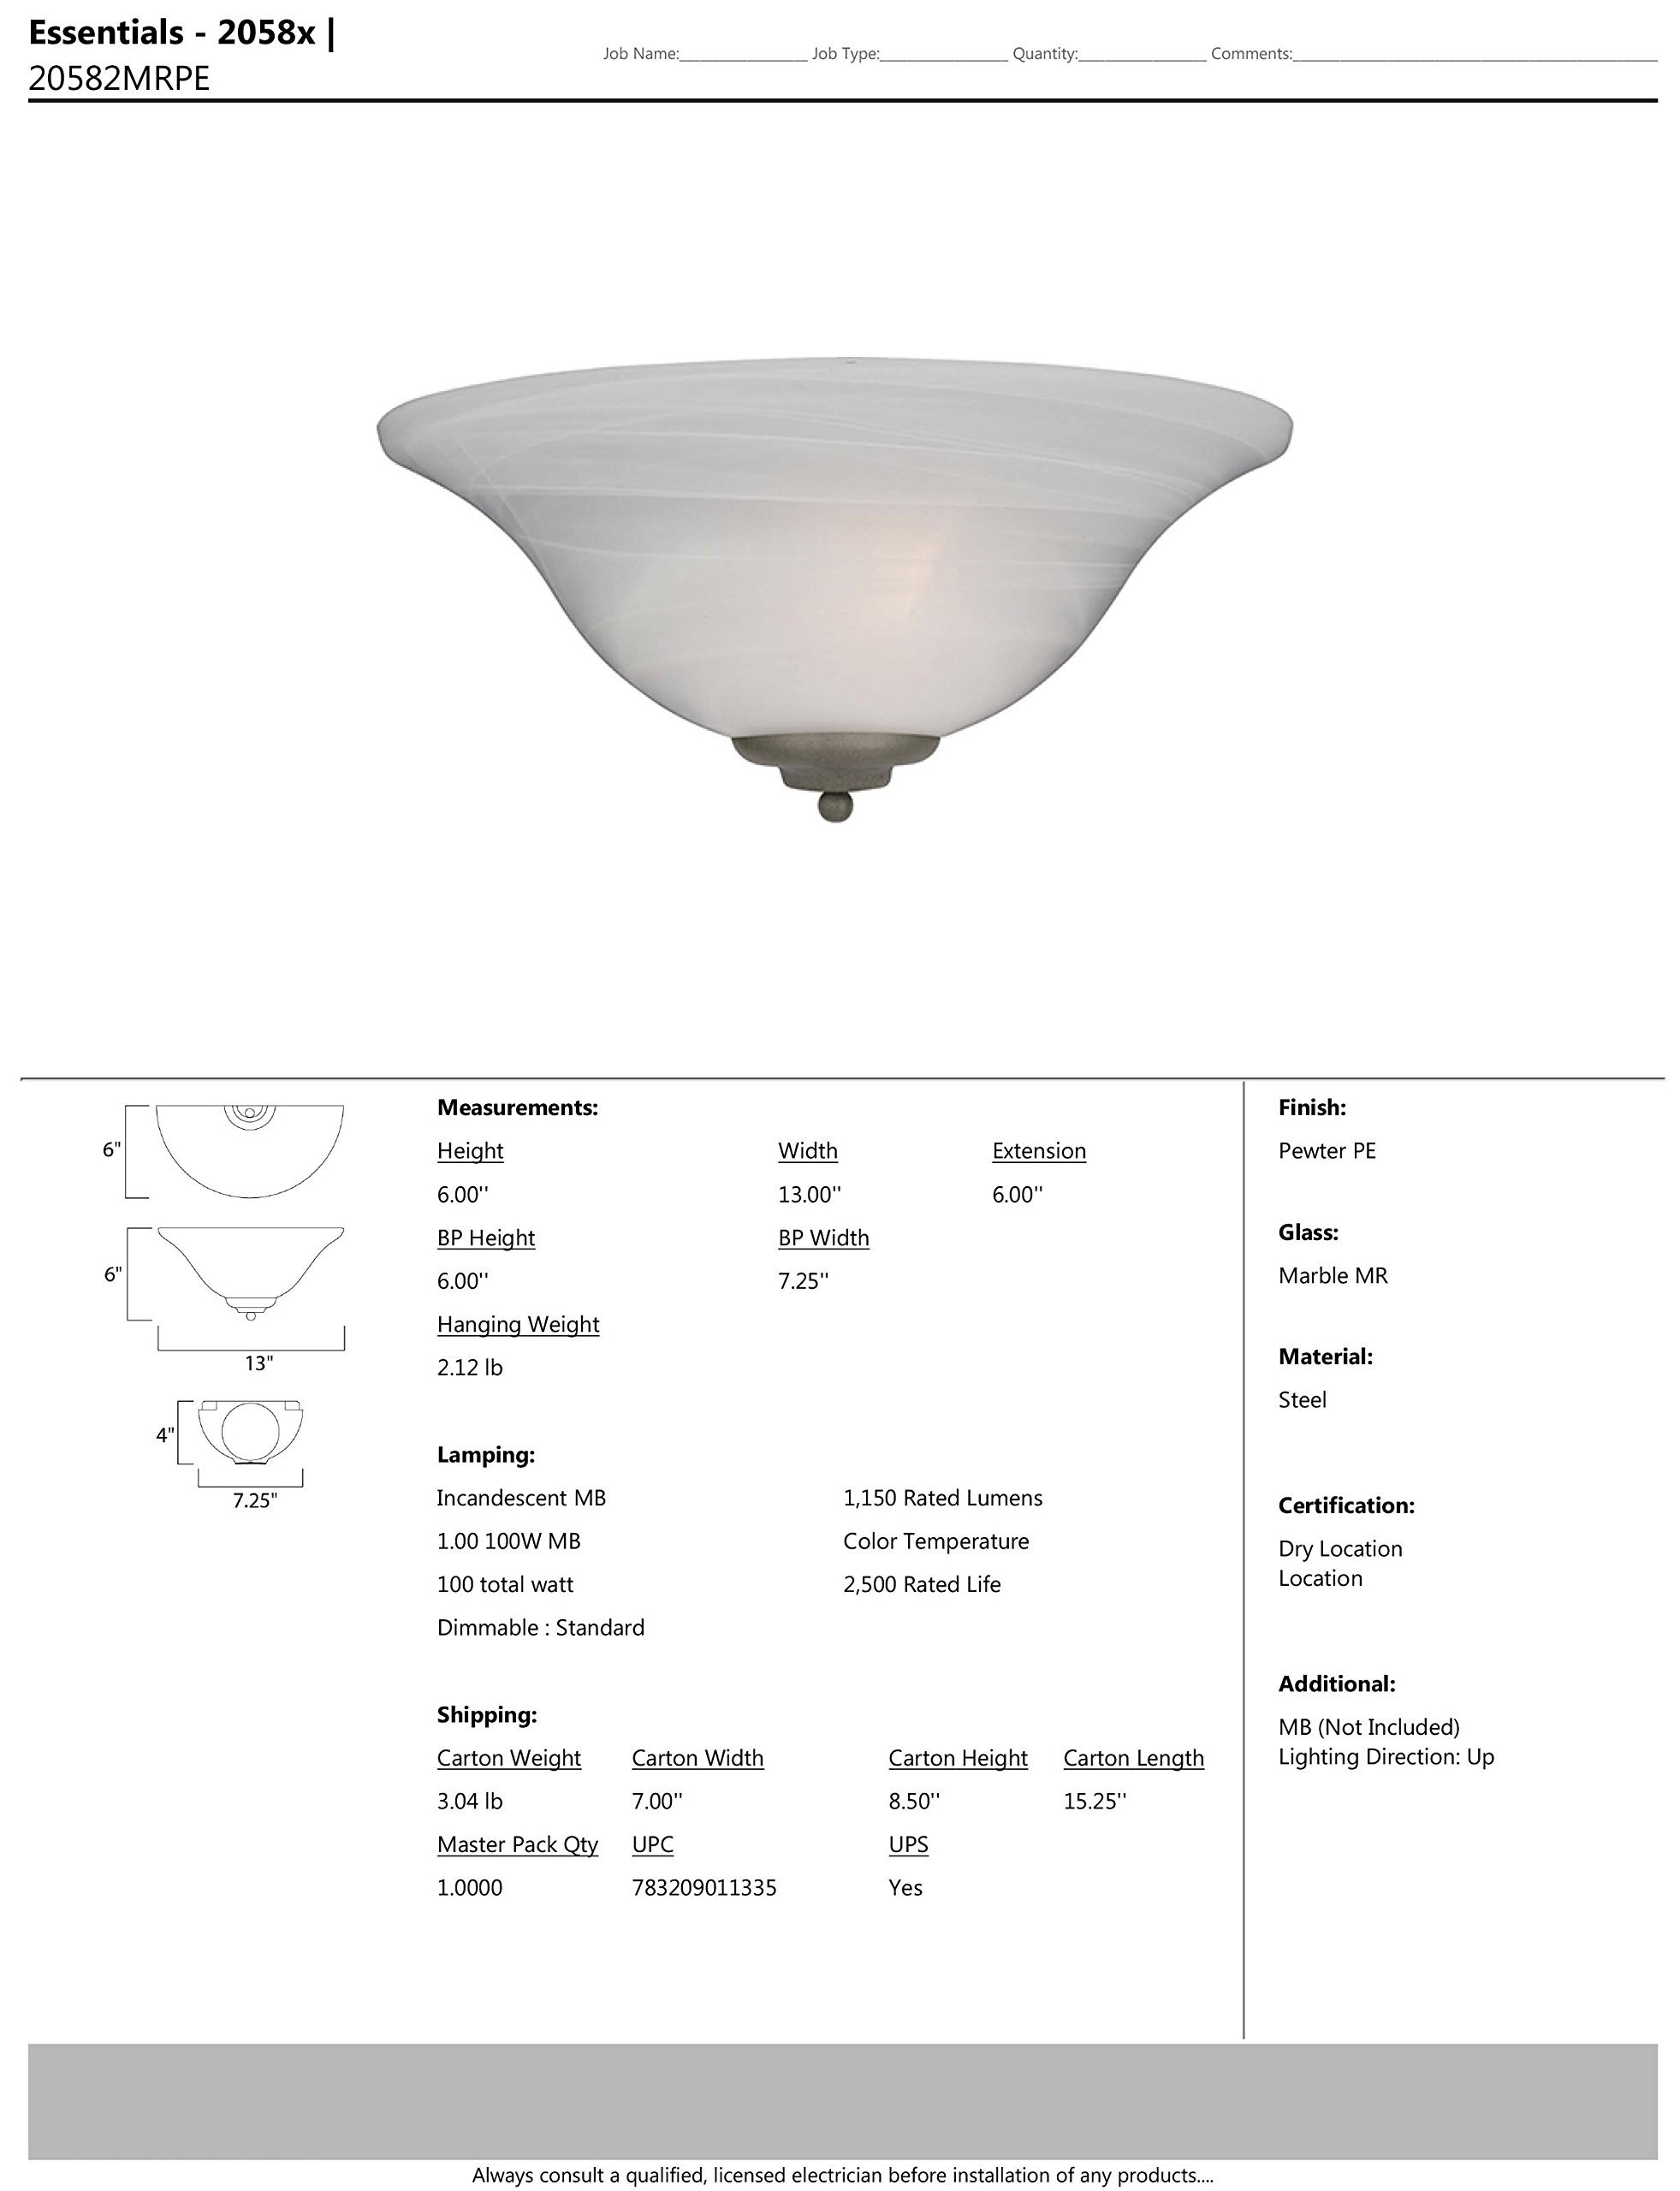 Maxim 20582MRPE Essentials 1-Light Wall Sconce, Pewter Finish, Marble Glass, MB Incandescent Incandescent Bulb , 40W Max., Dry Safety Rating, 2900K Color Temp, Standard Dimmable, Glass Shade Material, 9000 Rated Lumens by Maxim Lighting (Image #2)